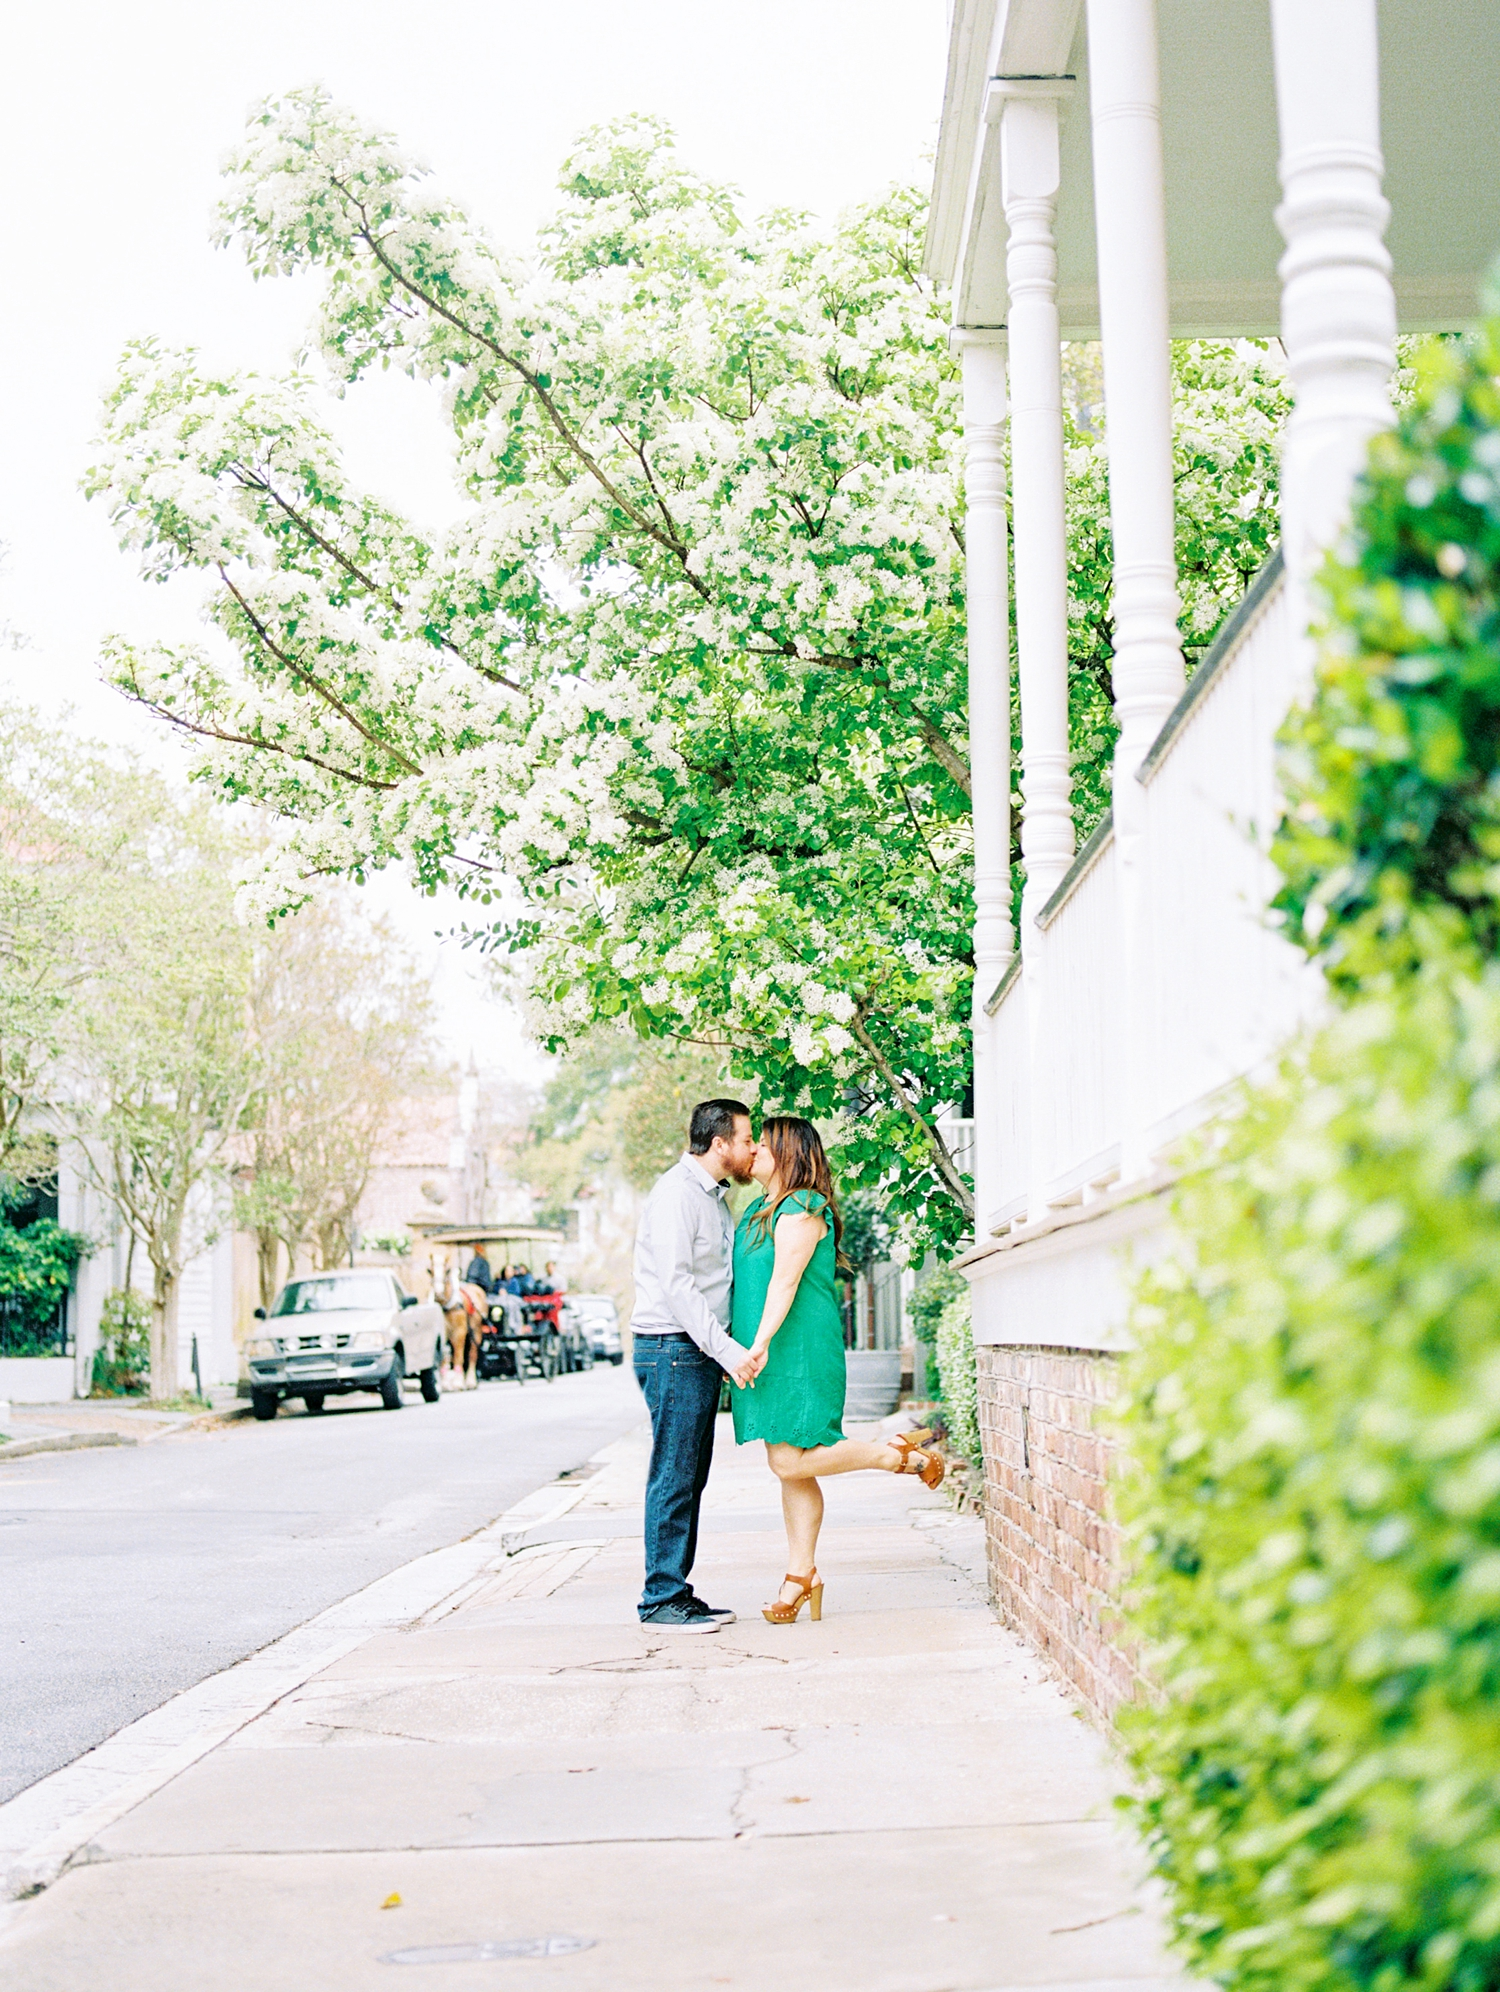 Lisa Silva Photography- Ponte Vedra Beach and Jacksonville, Florida Fine Art Film Wedding Photography- Engagement Session in Historic Charleston, South Carolina_0011.jpg